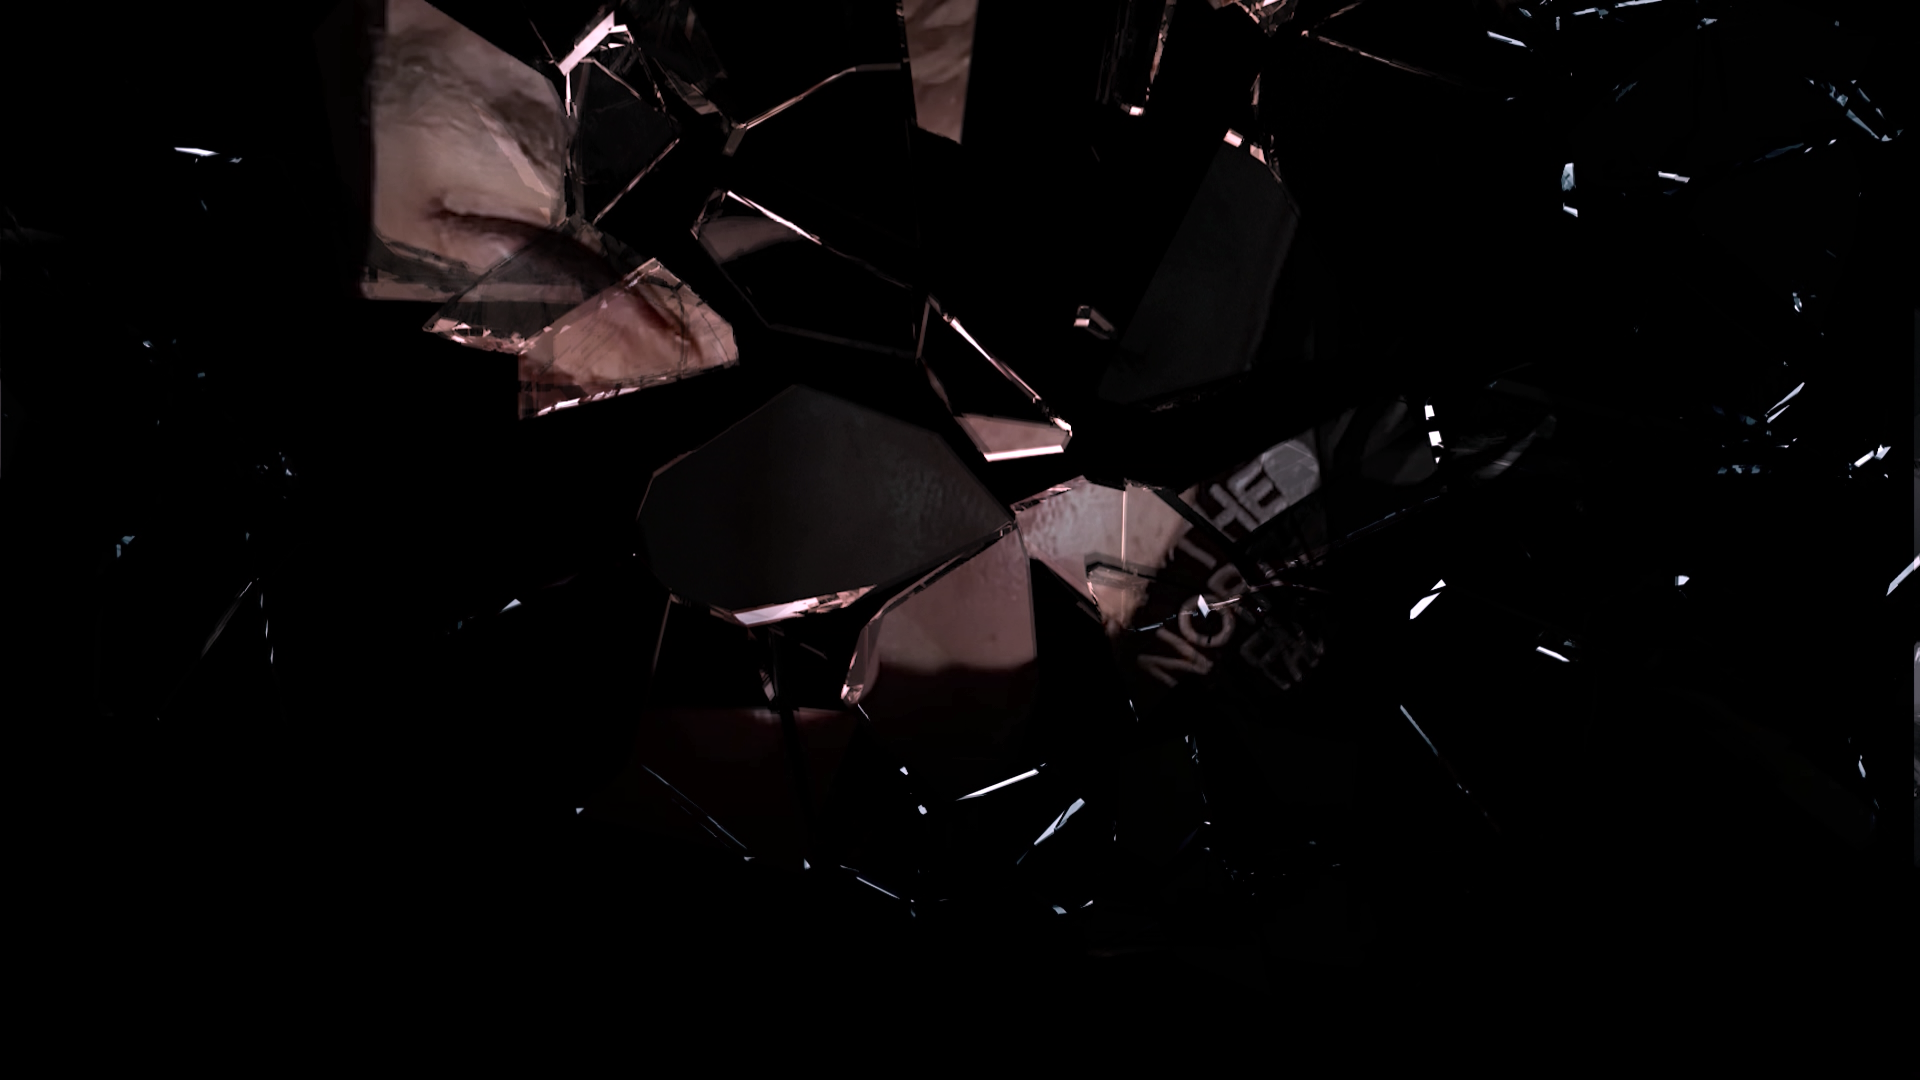 Mark Leckey, film still, To the Old World (Thank You for the Use of Your Body)